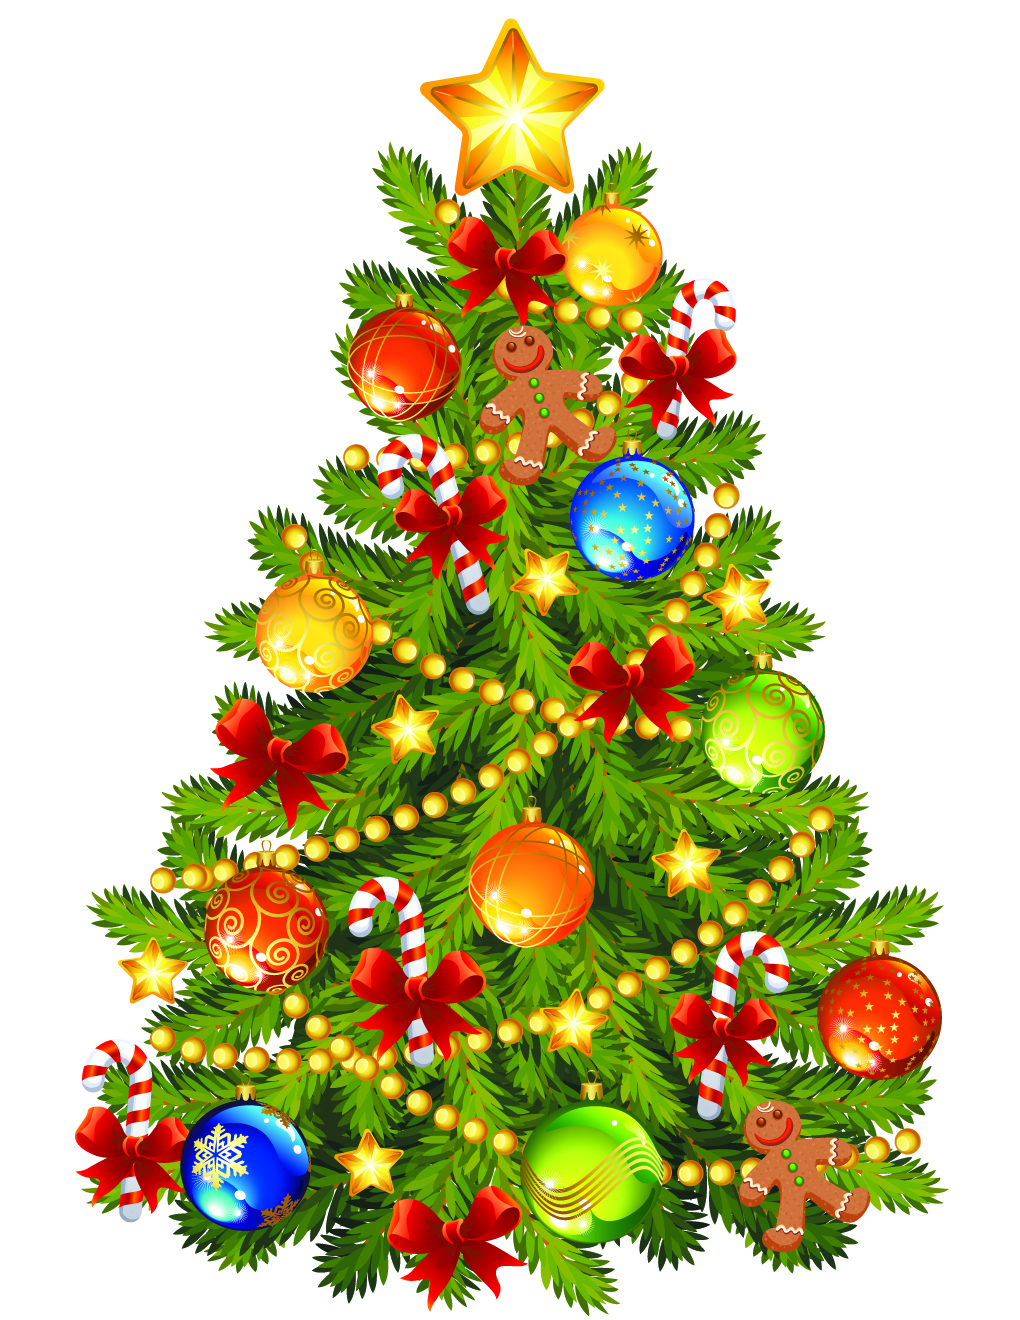 Merry Xmas messages & wishes for your loved ones | Love Messages ...